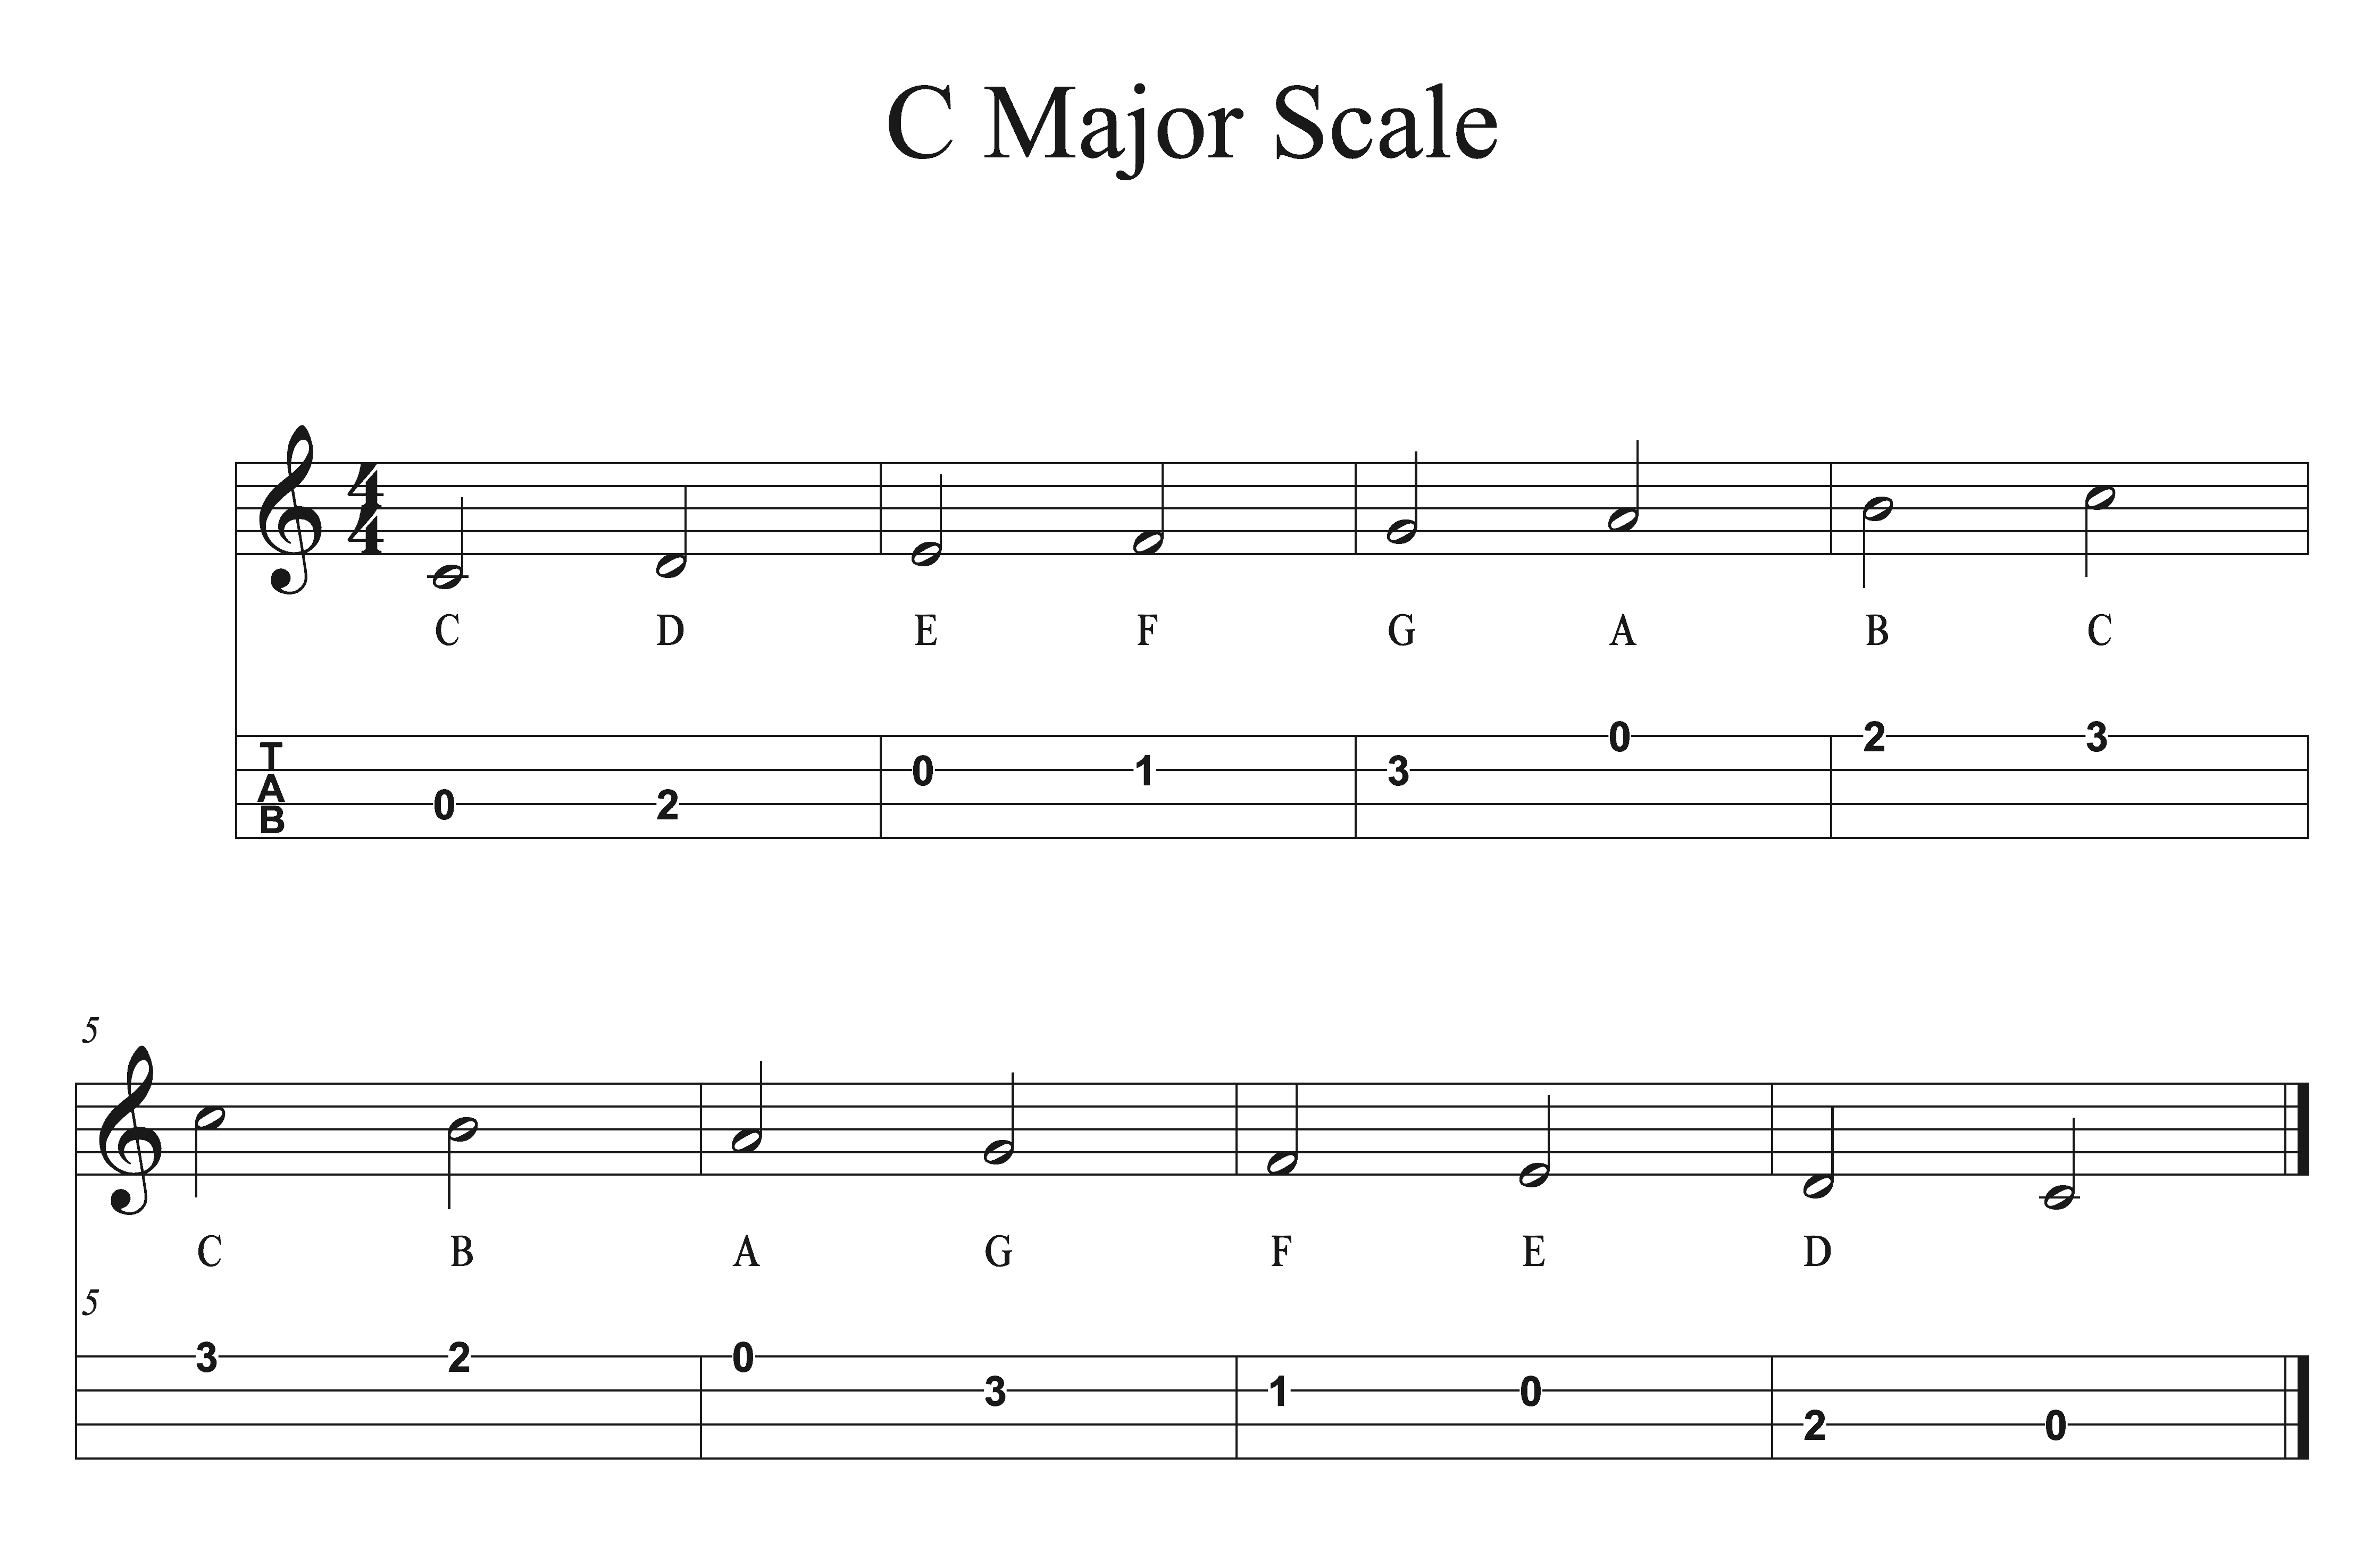 Learn how to read ukulele tabs by playing theC Major Scale in ukulele tab notation